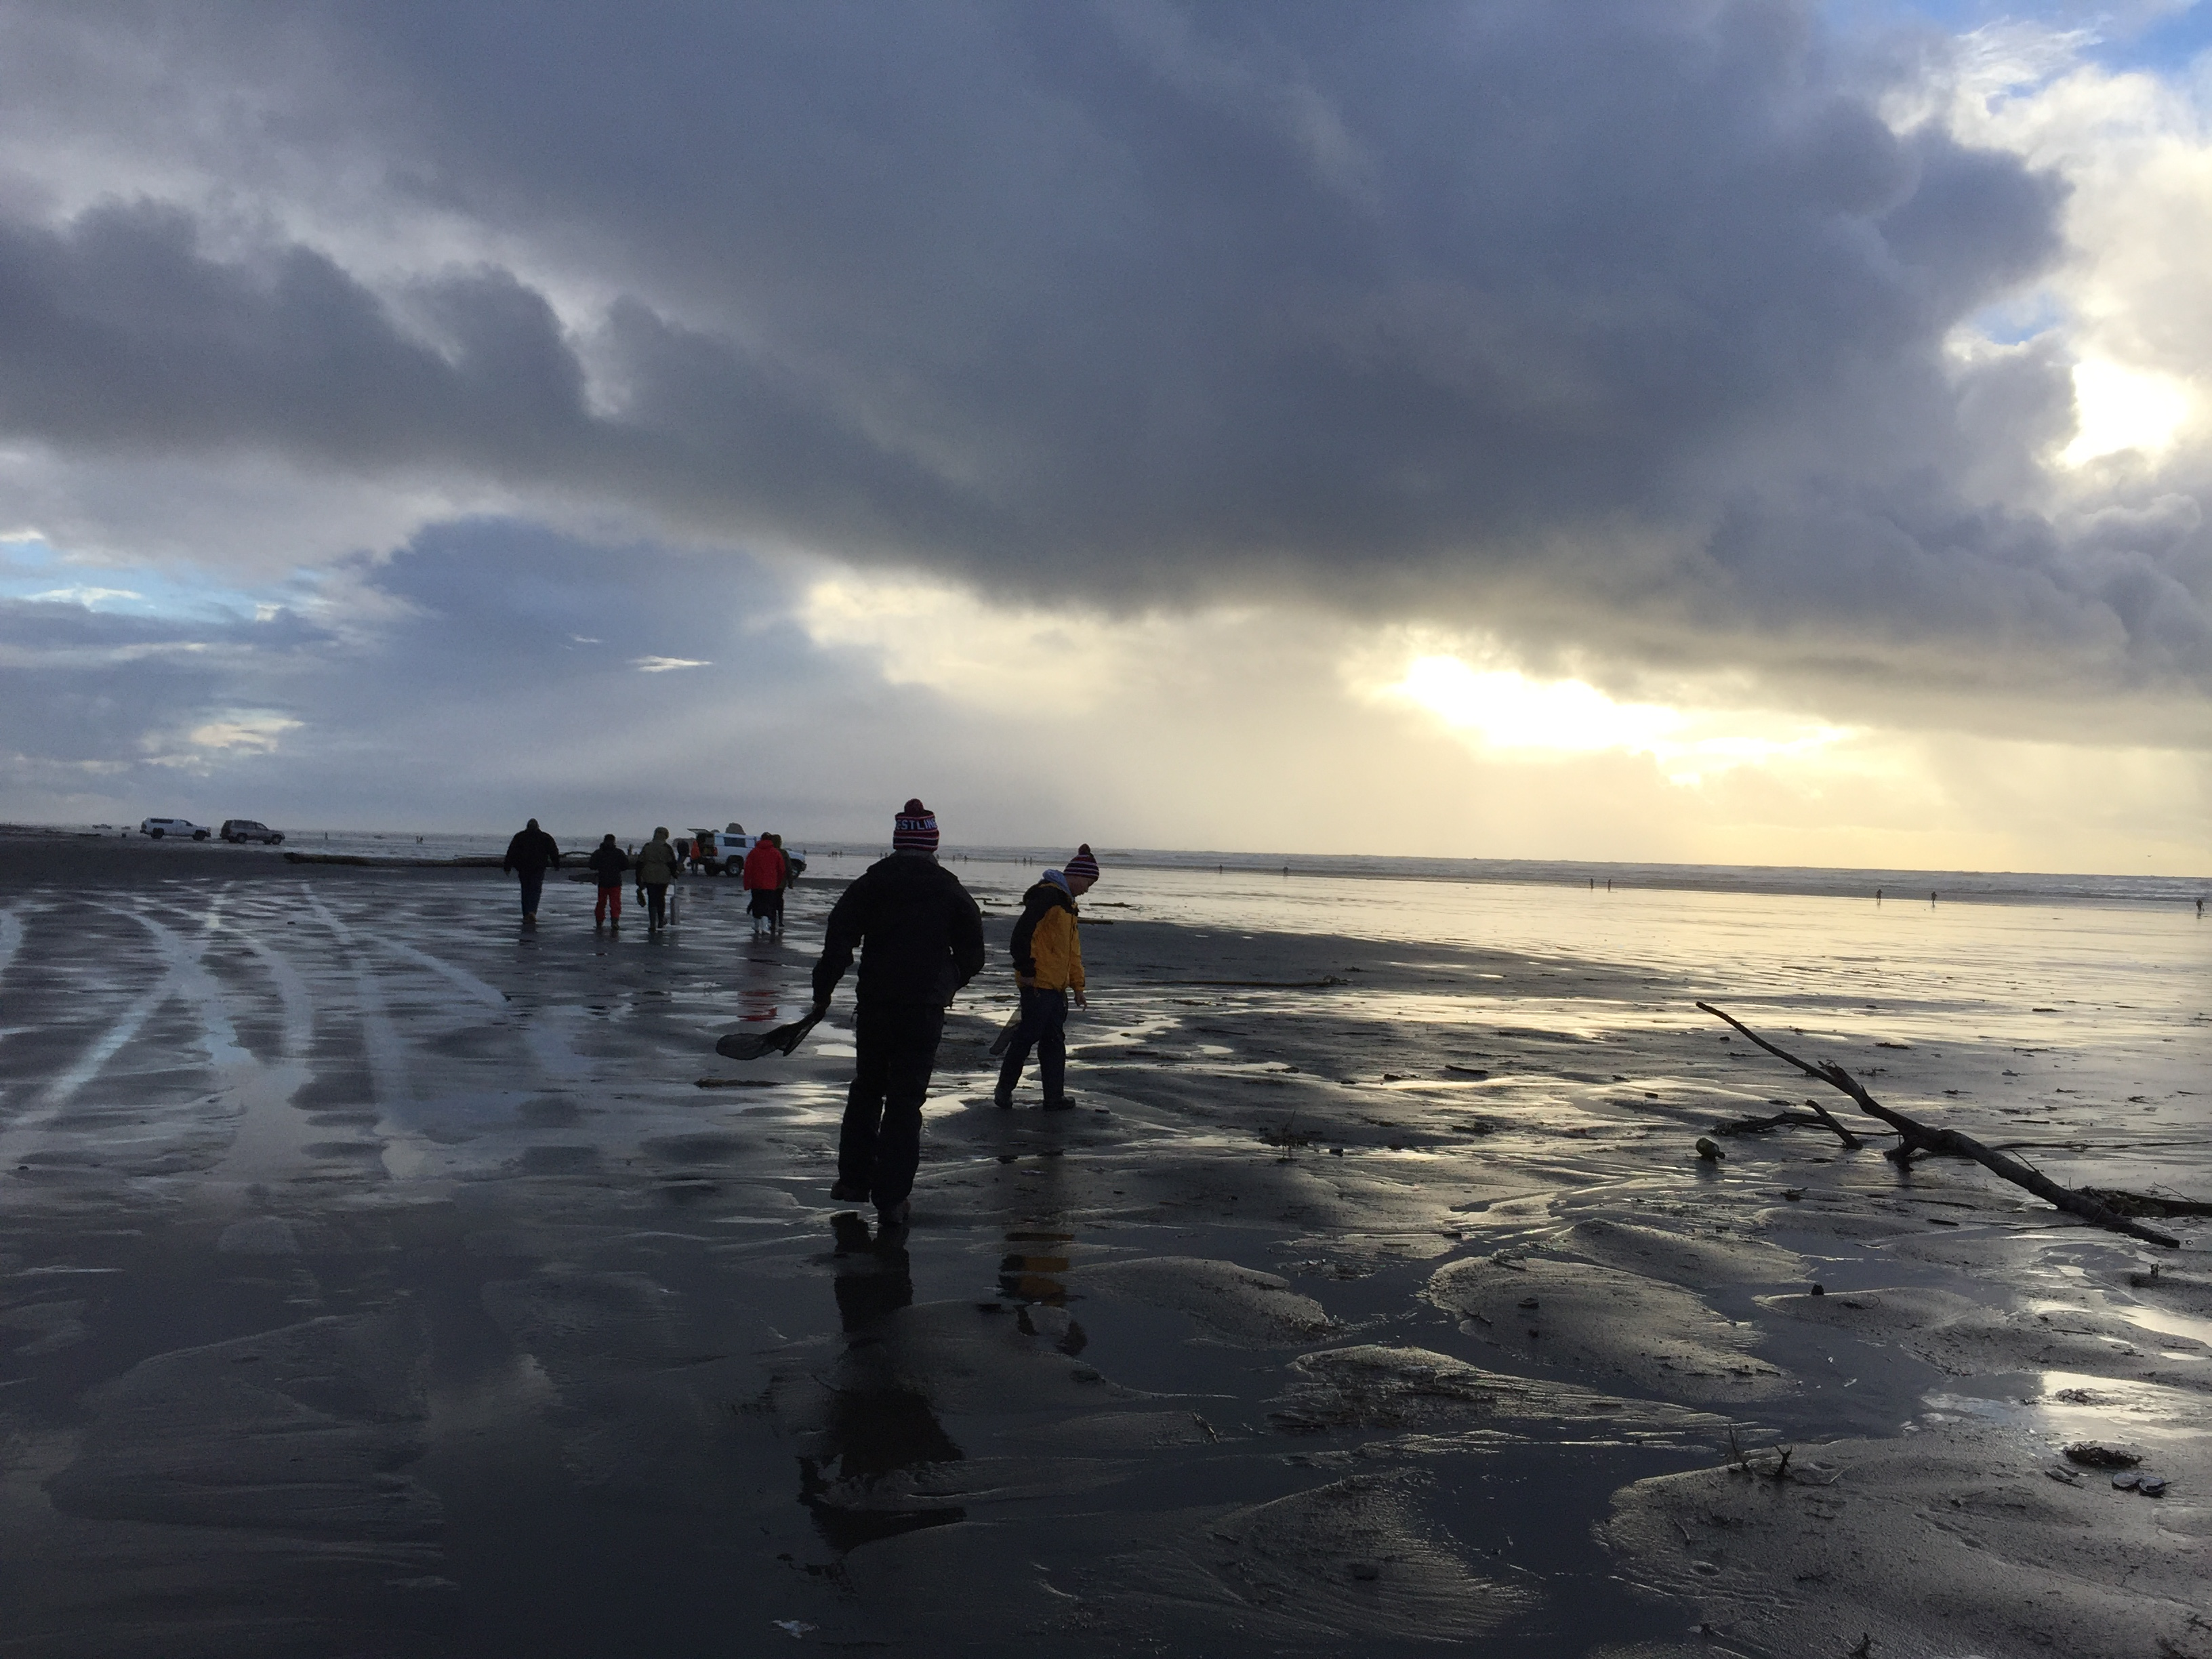 Salmon fishing the outdoor line blog digging is open during pm low tides this sunday jan 28 low tide is minus 04 feet at 406 pm at mocrocks monday jan nvjuhfo Gallery